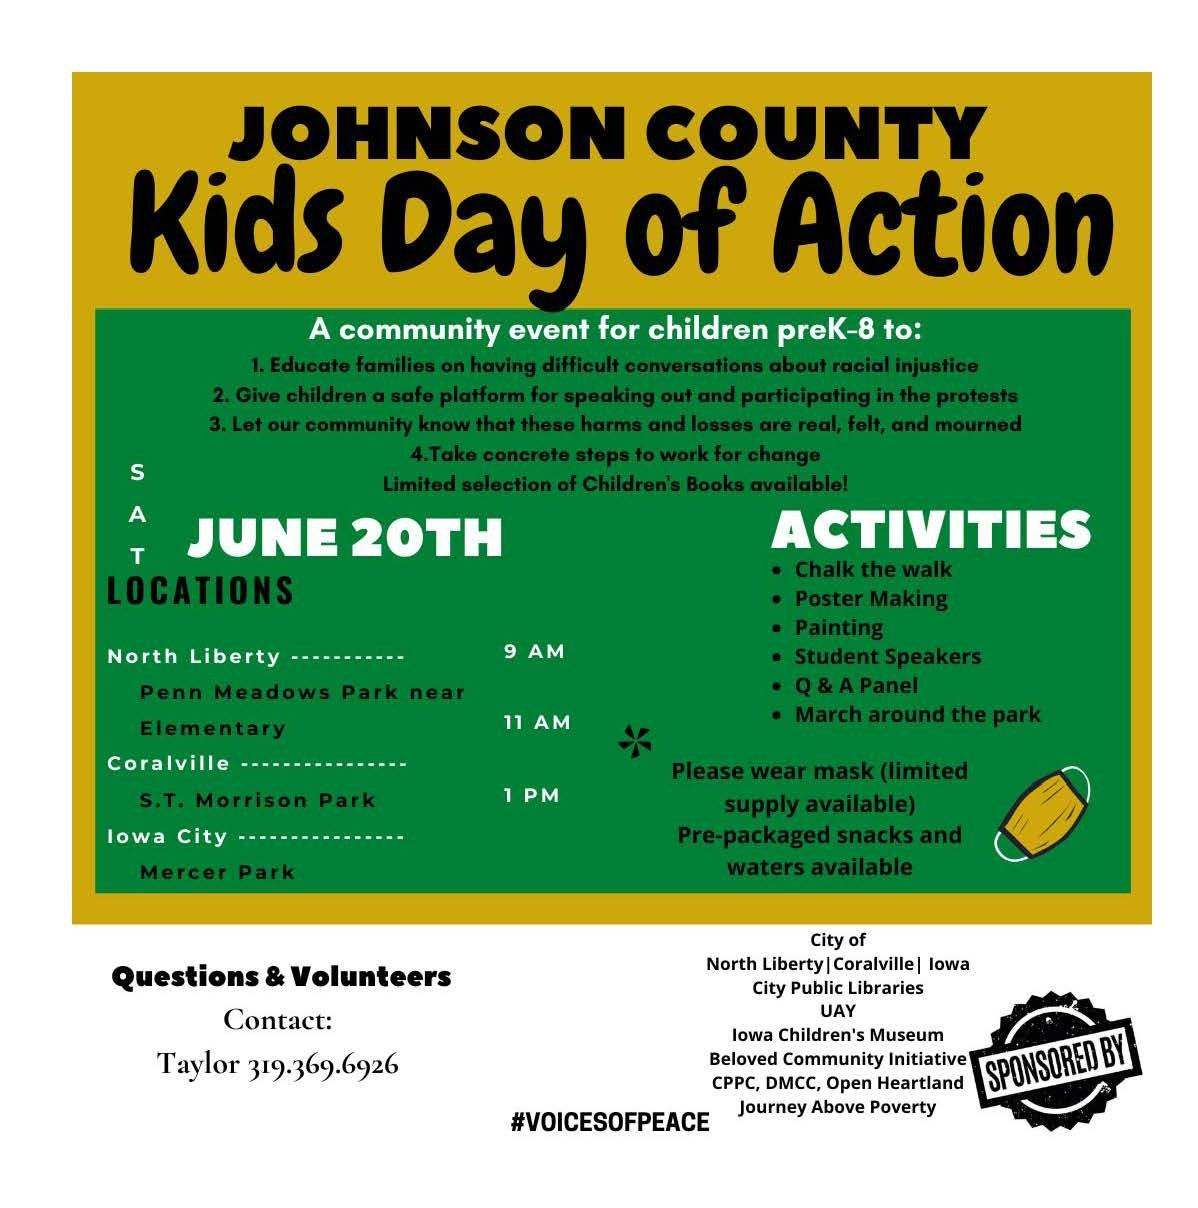 Kids Day of Action